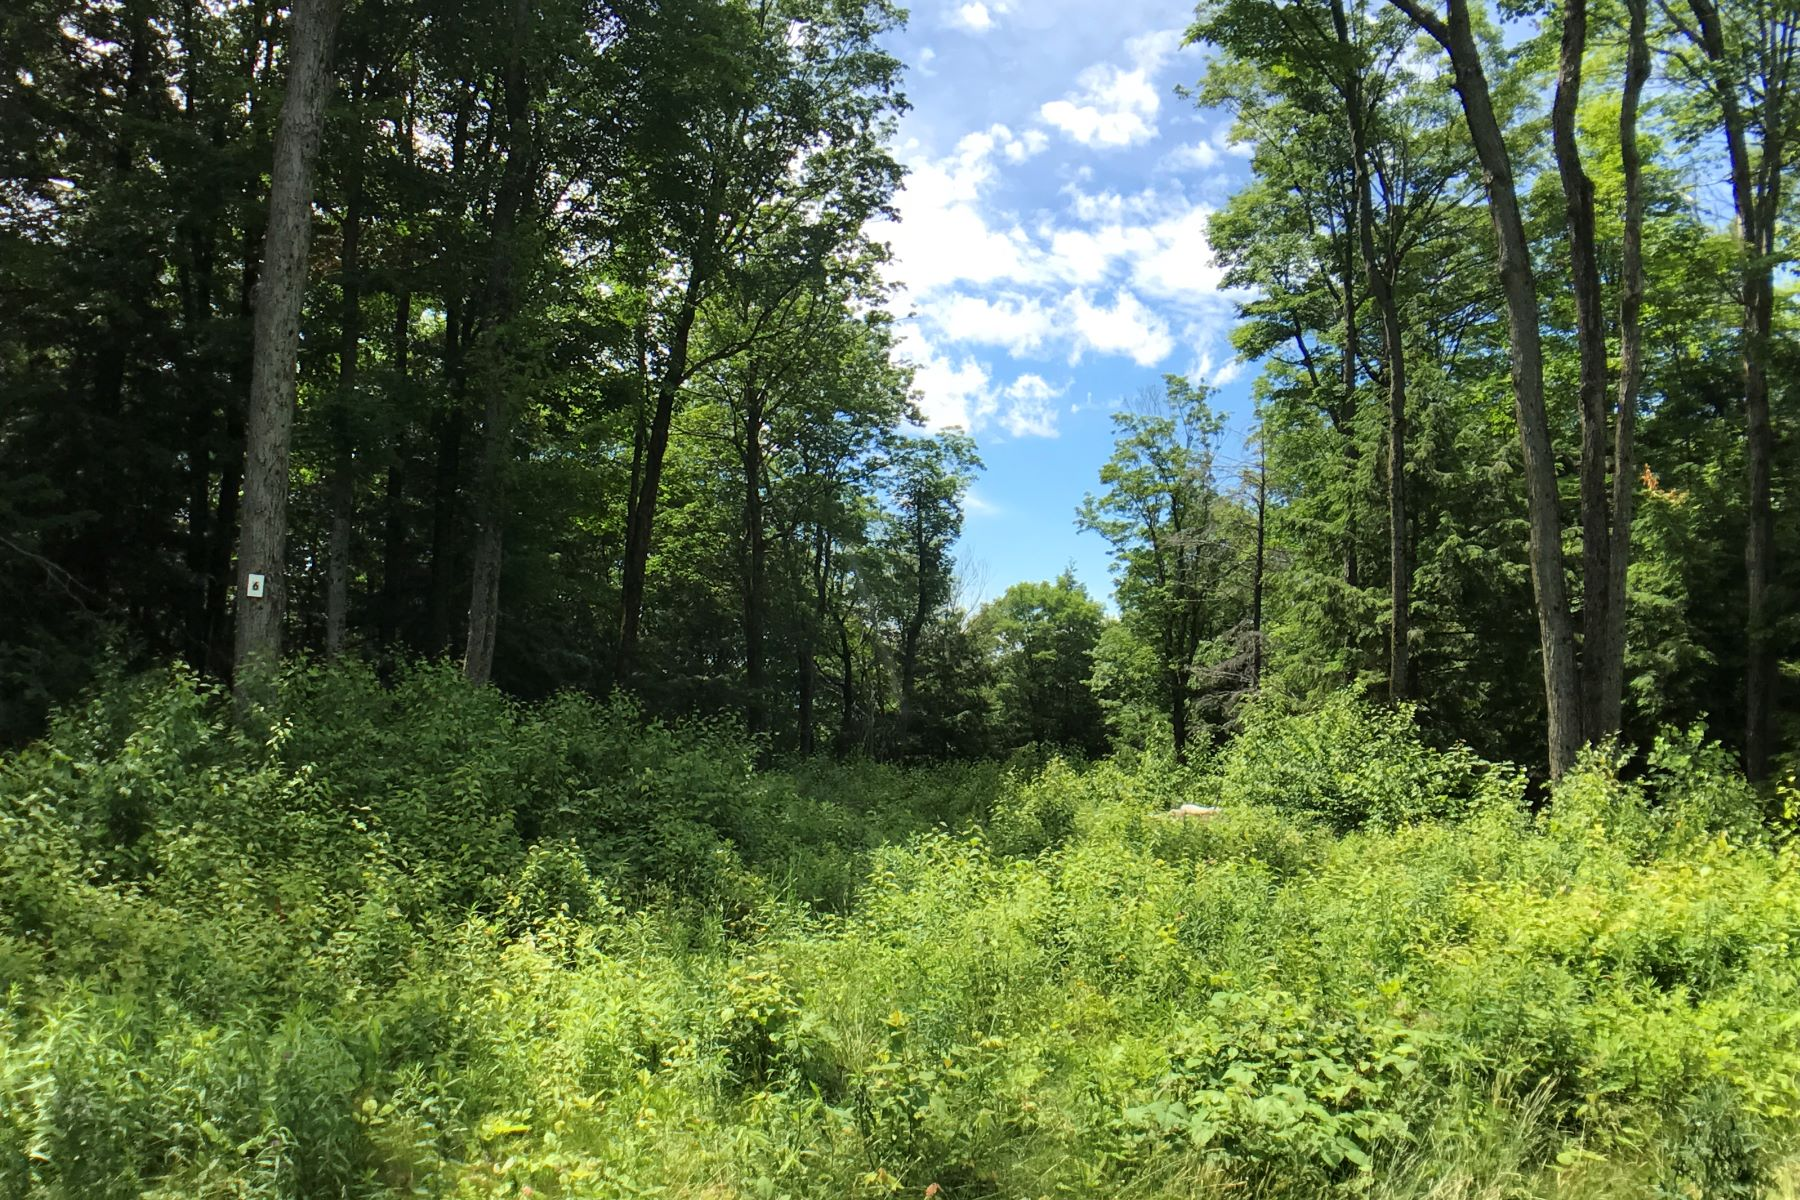 Terreno por un Venta en Affordable Ready-to-Build Parcel w/ Shared Waterfront Access. Lot 6 Moose Dr Lee, Massachusetts 01238 Estados Unidos